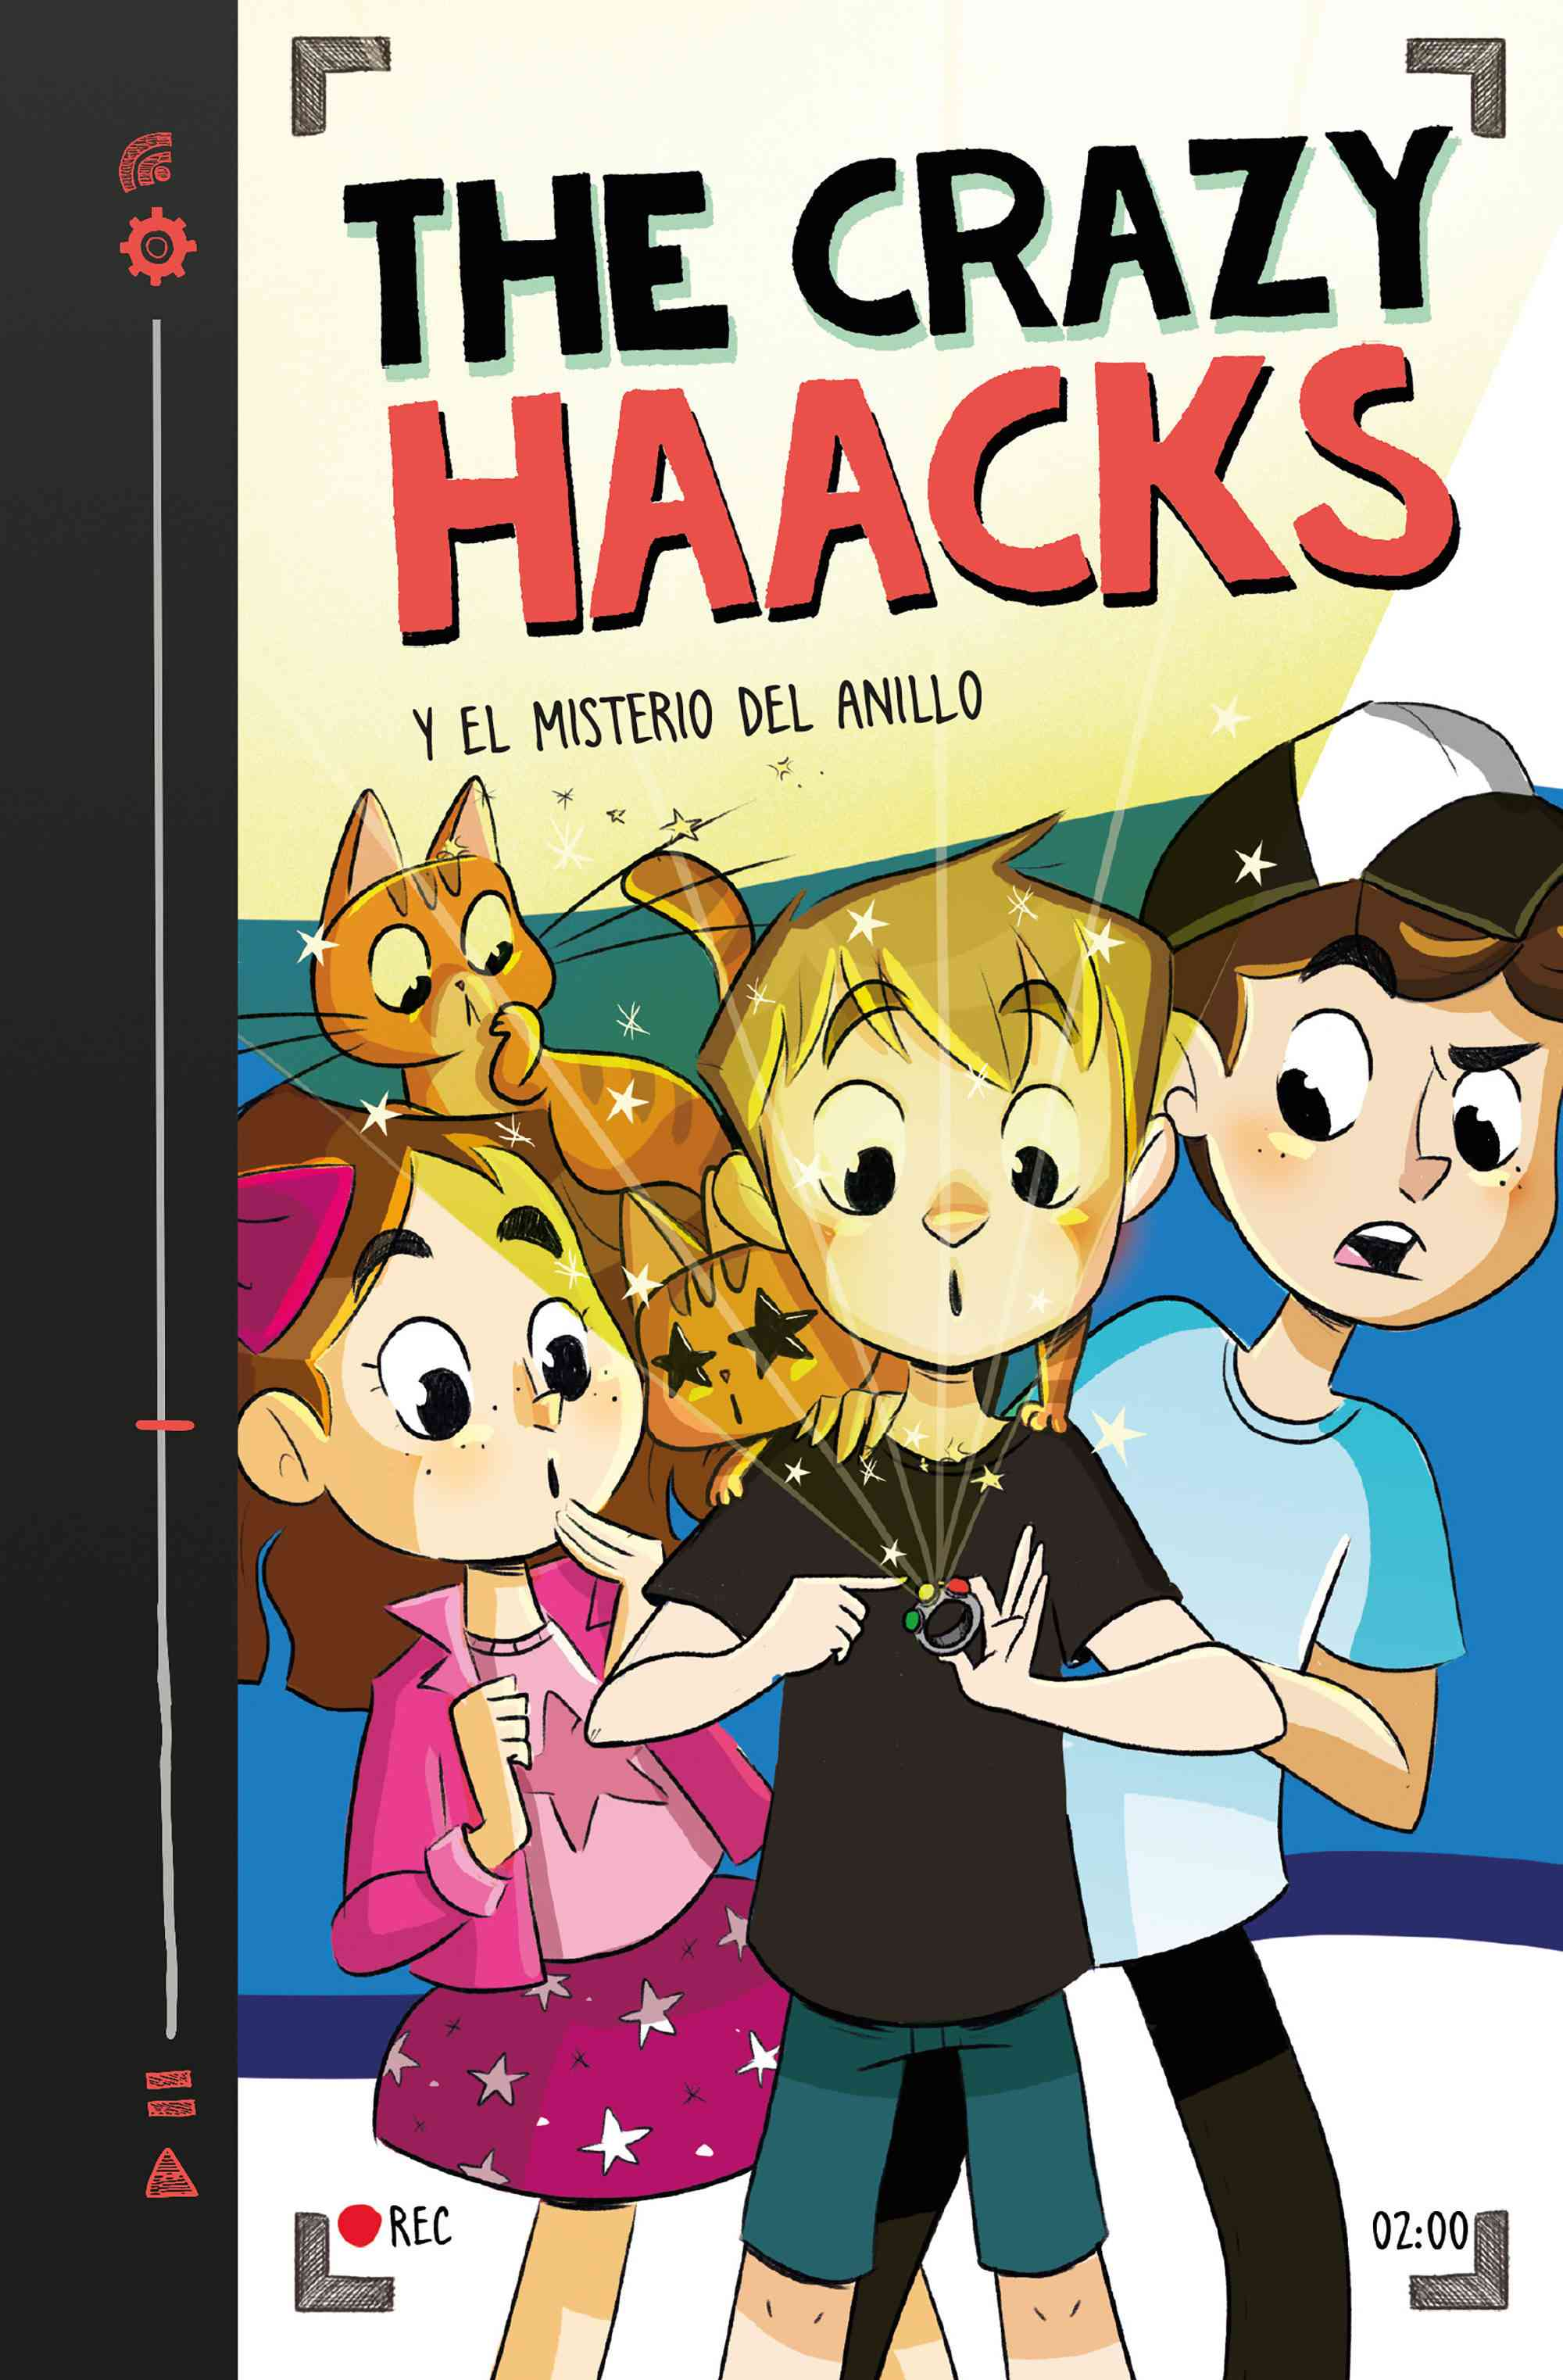 Portada de THE CRAZY HAACKS Y EL MISTERIO DEL ANILLO (Serie The Crazy Haacks 2)